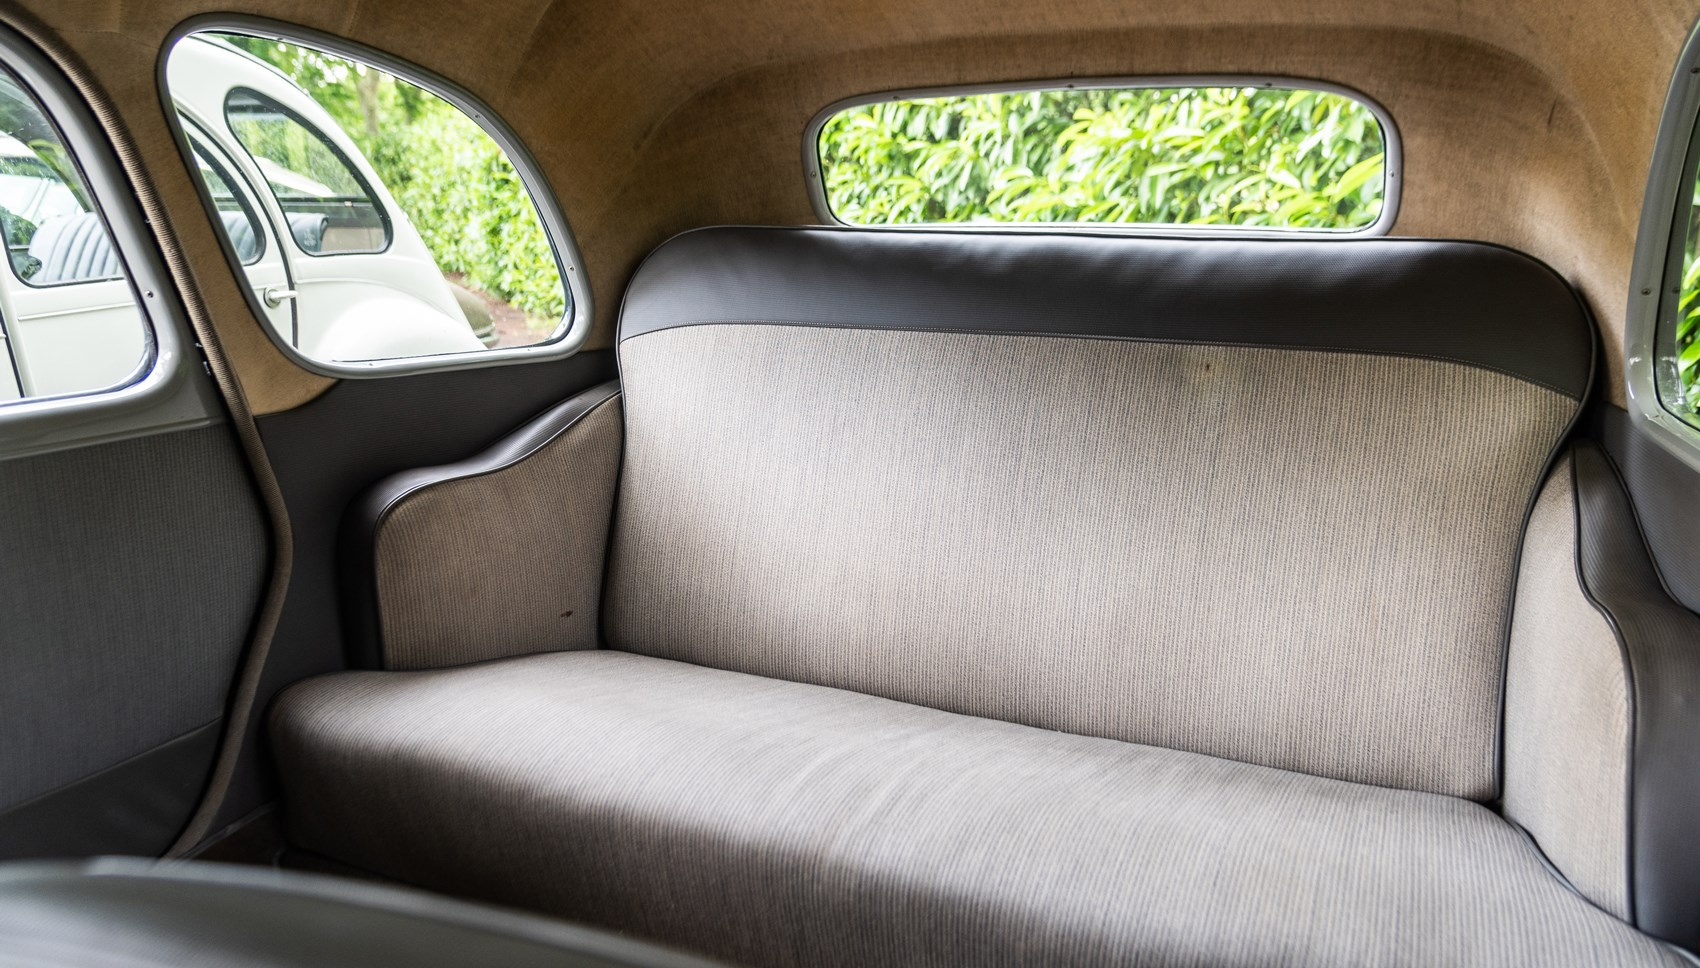 Citroen Traction Avant rear seats